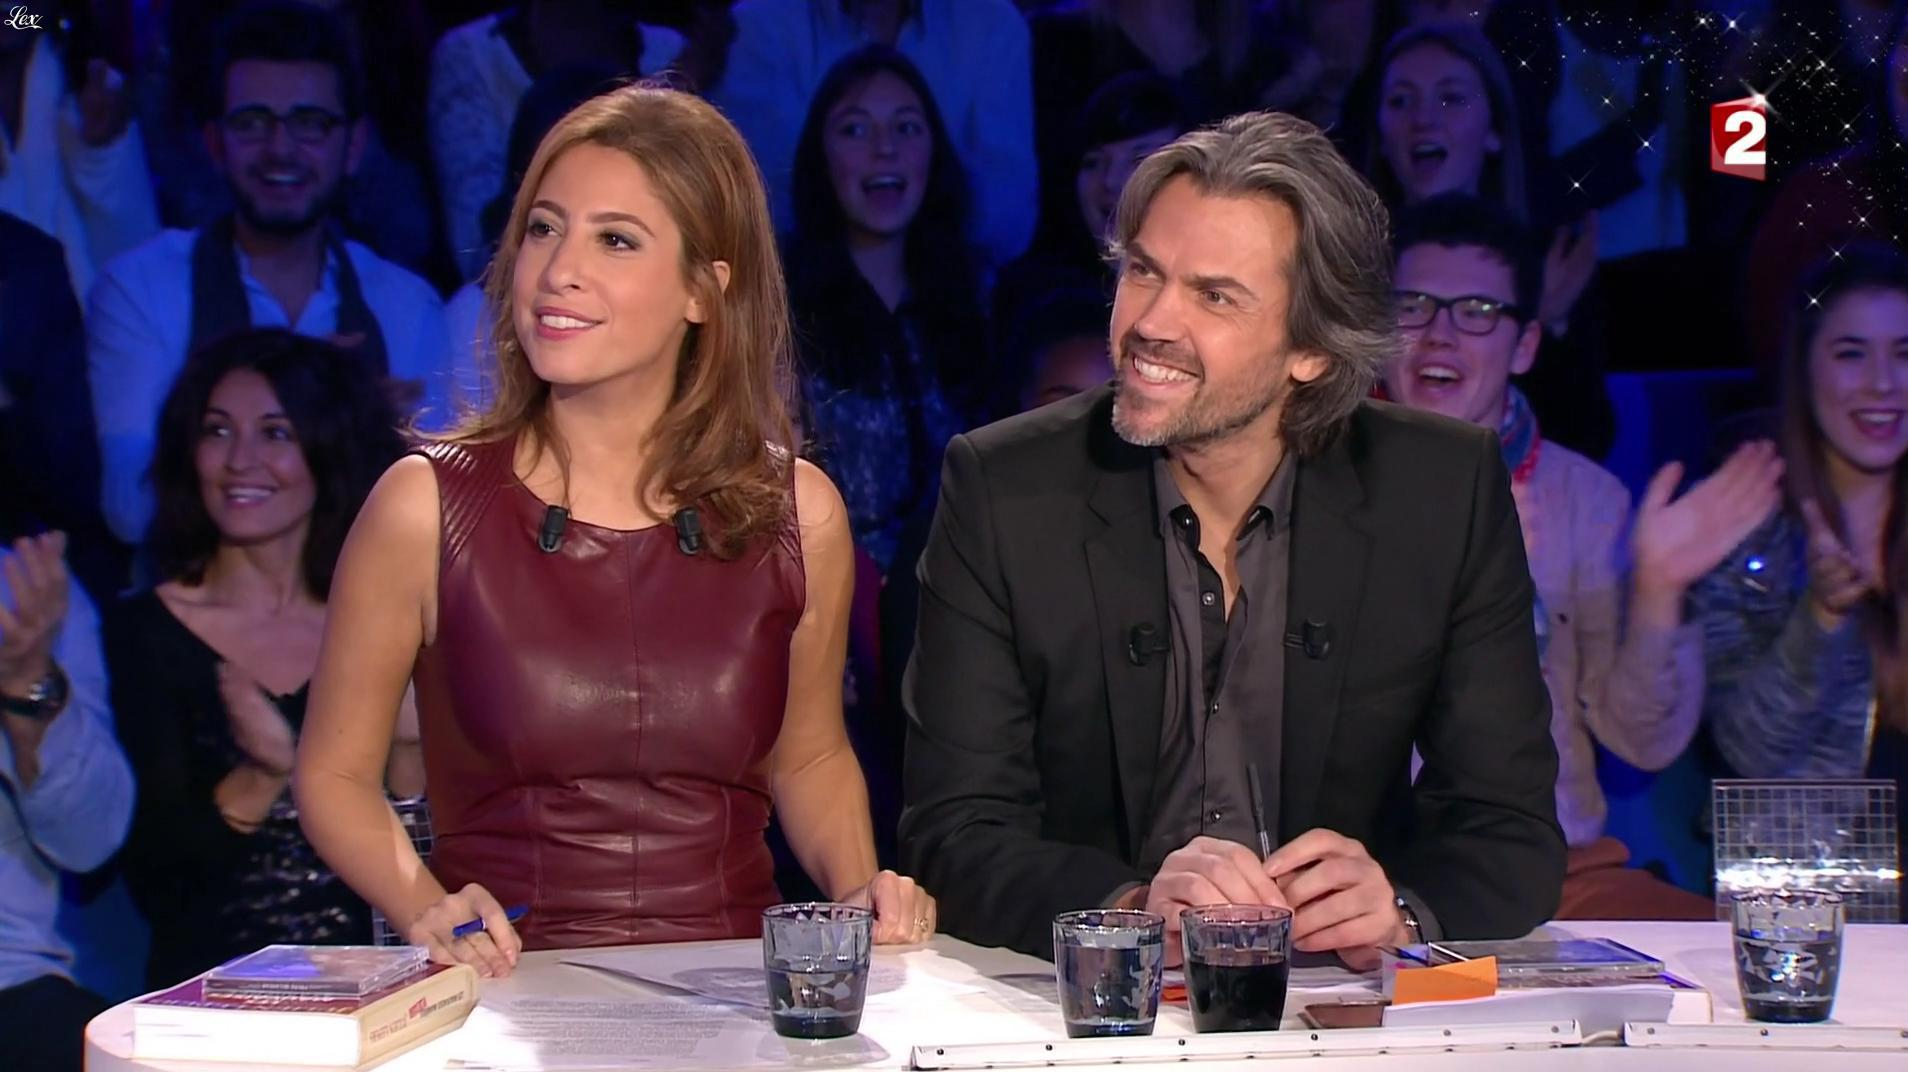 L a salam dans on n 39 est pas couch 20 12 14 01 - On n est pas couche horaire ...